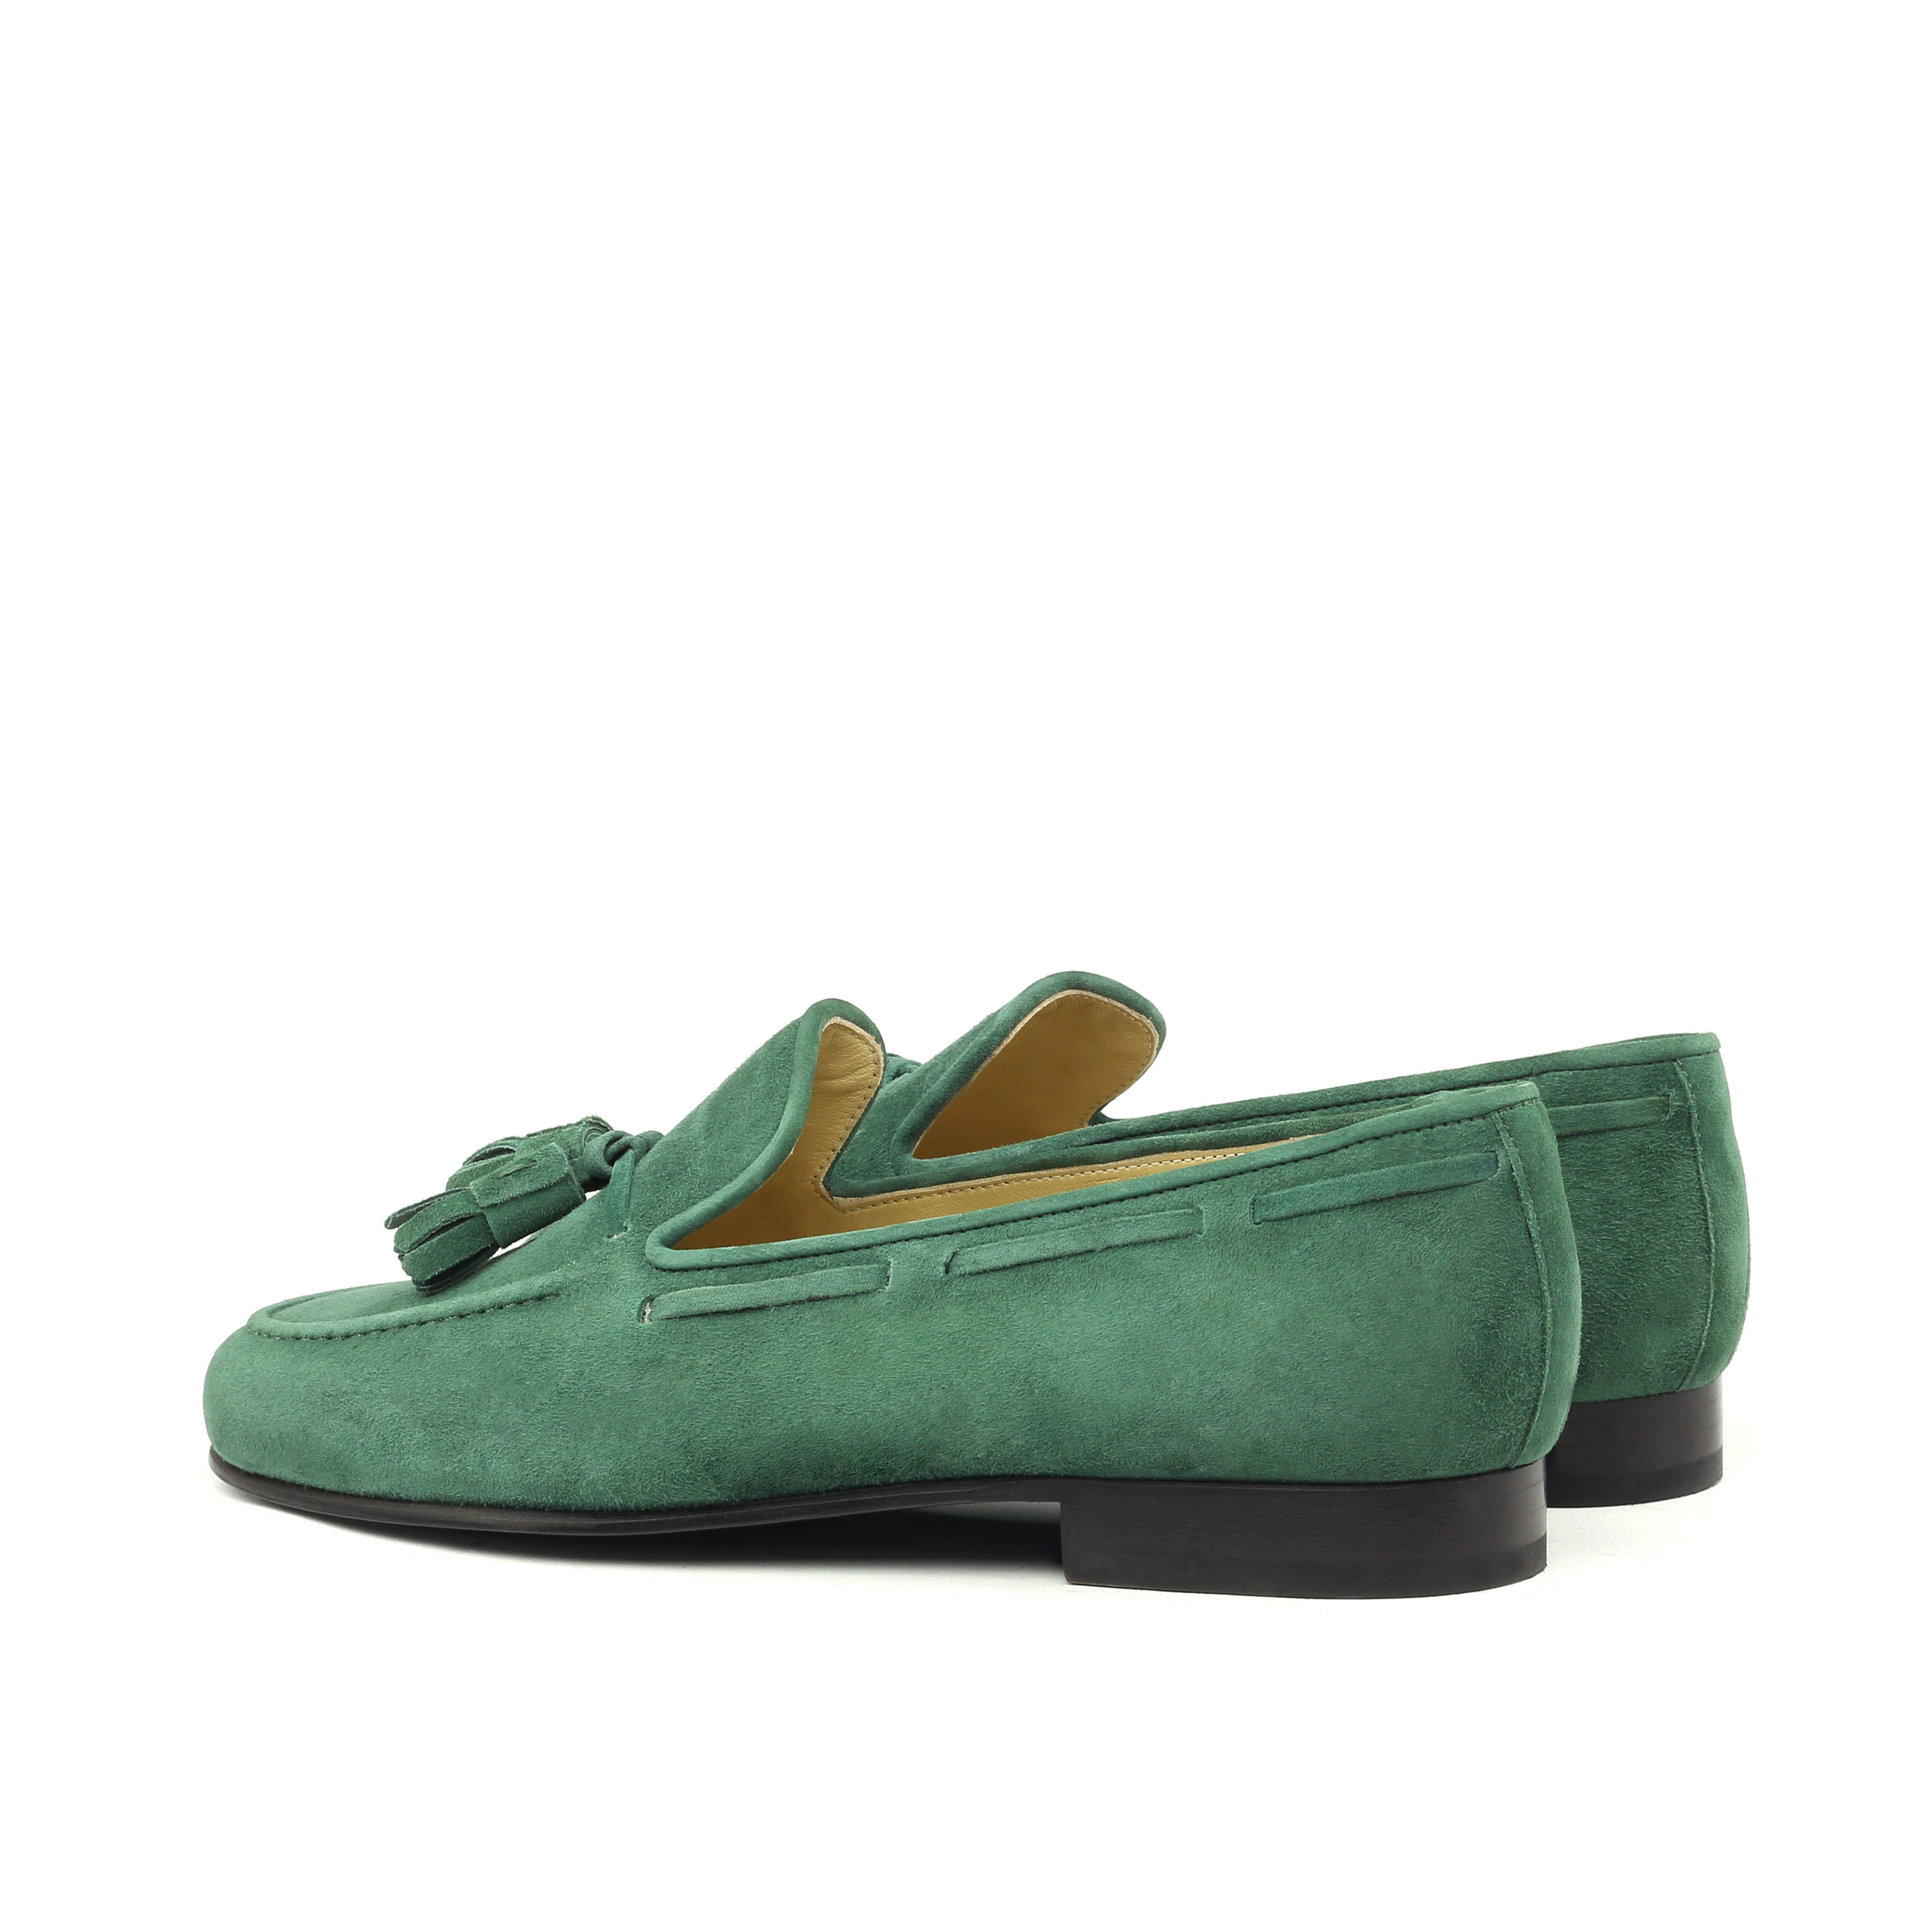 40e421a1dce Dark Green Suede Tassel Loafers. Manor of London